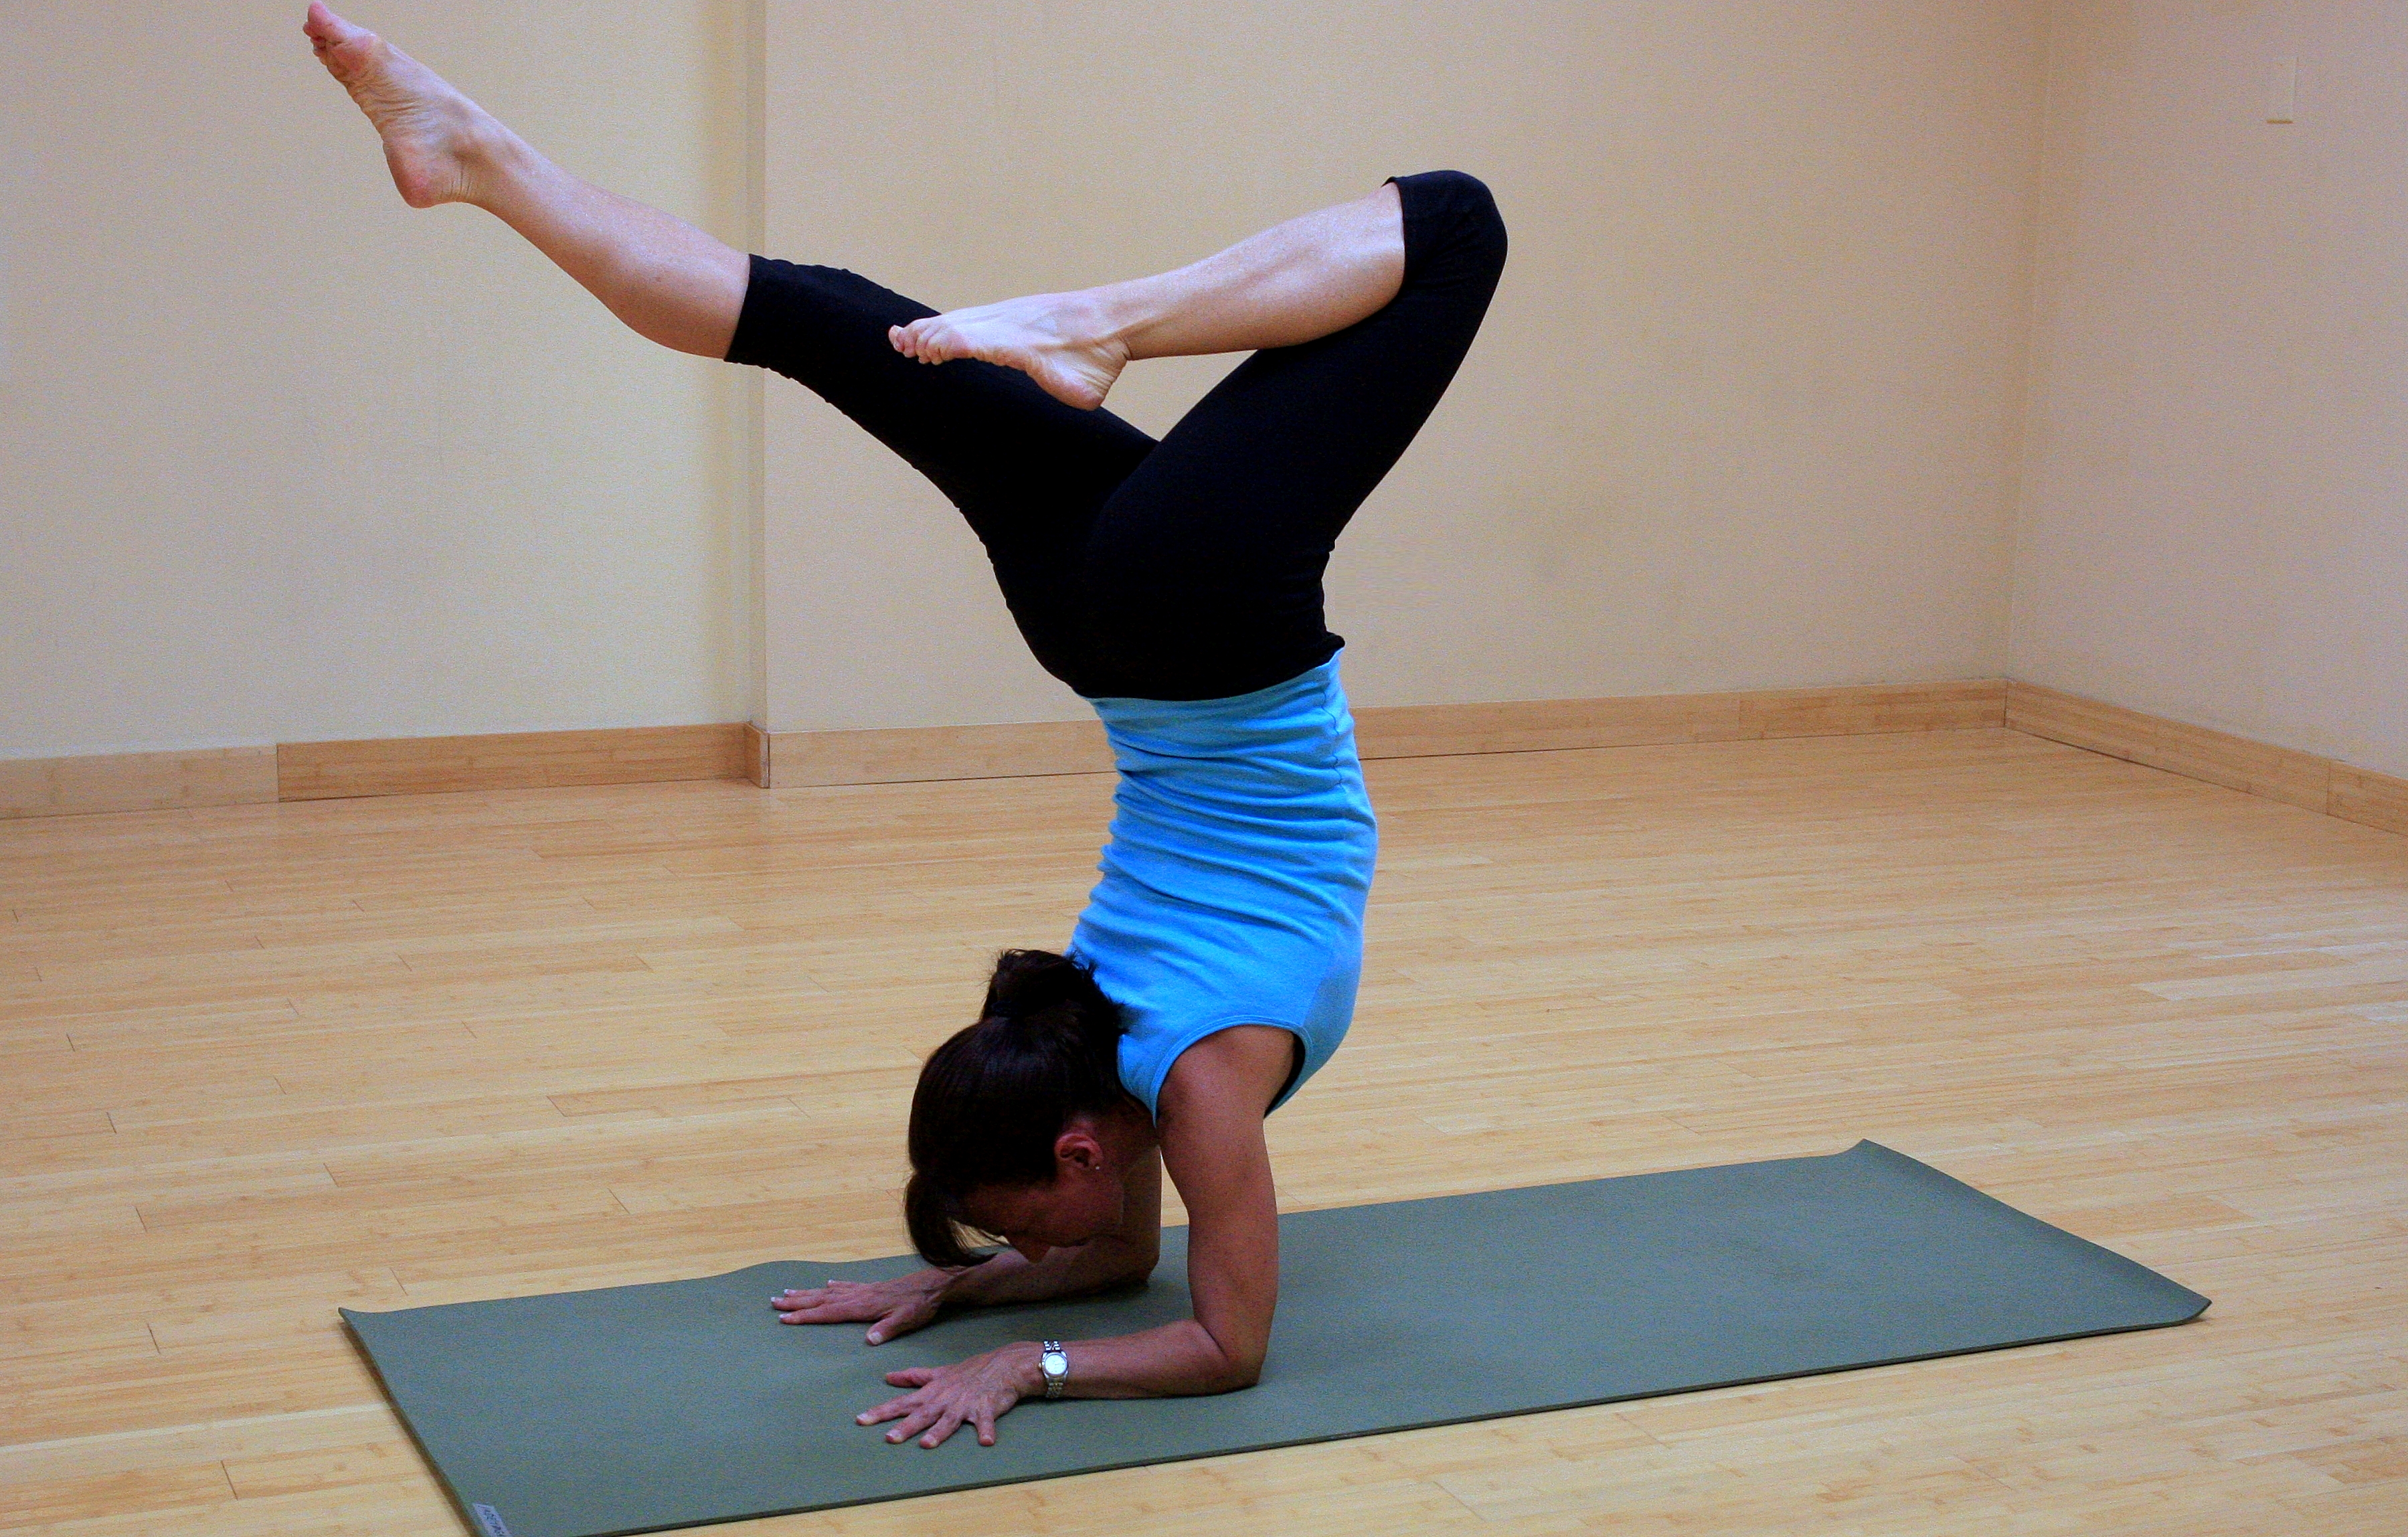 4 Ways to Apply Yoga in Daily Life